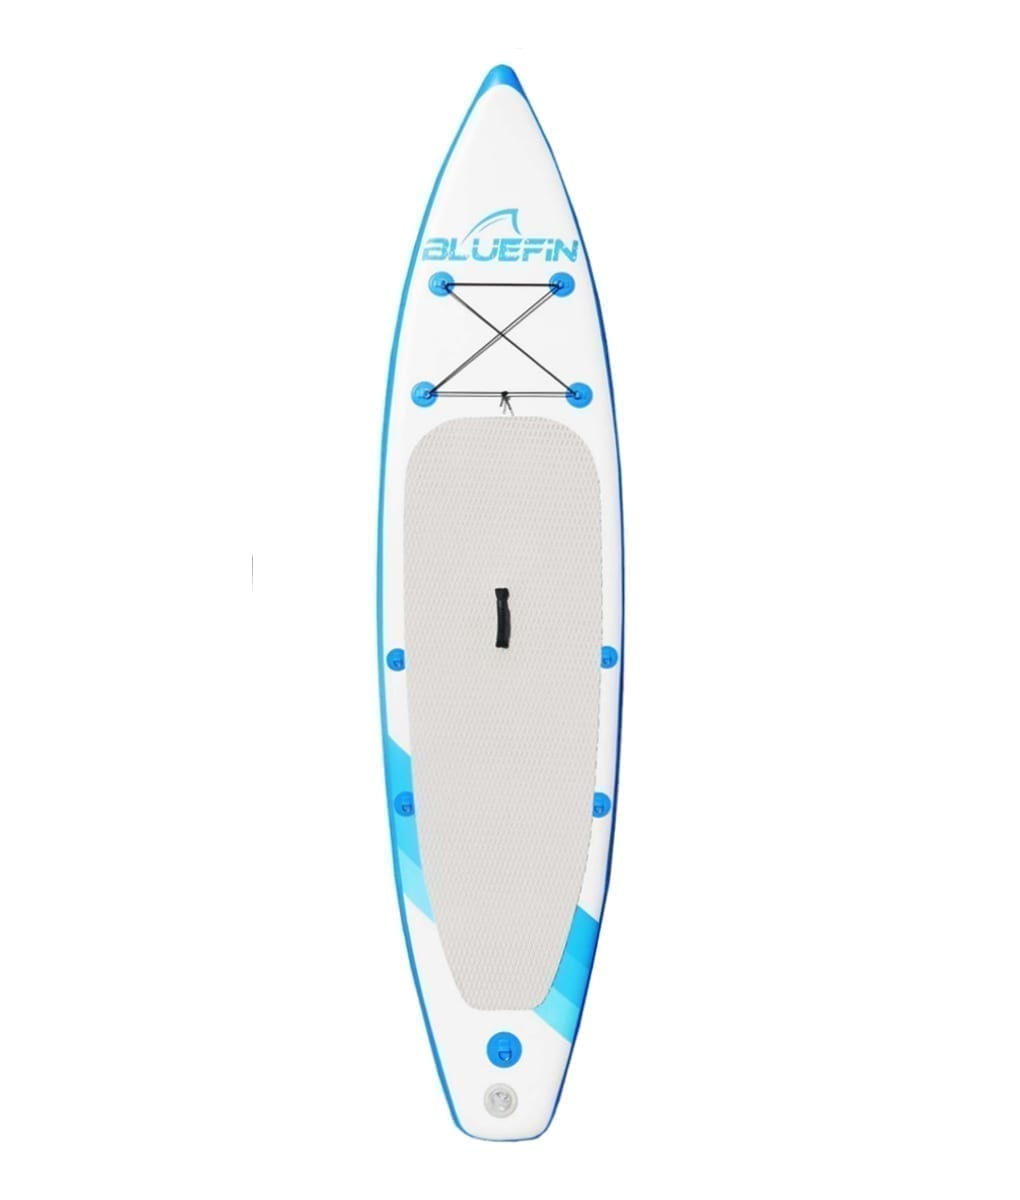 Bluefin inflatable stand up paddle board front